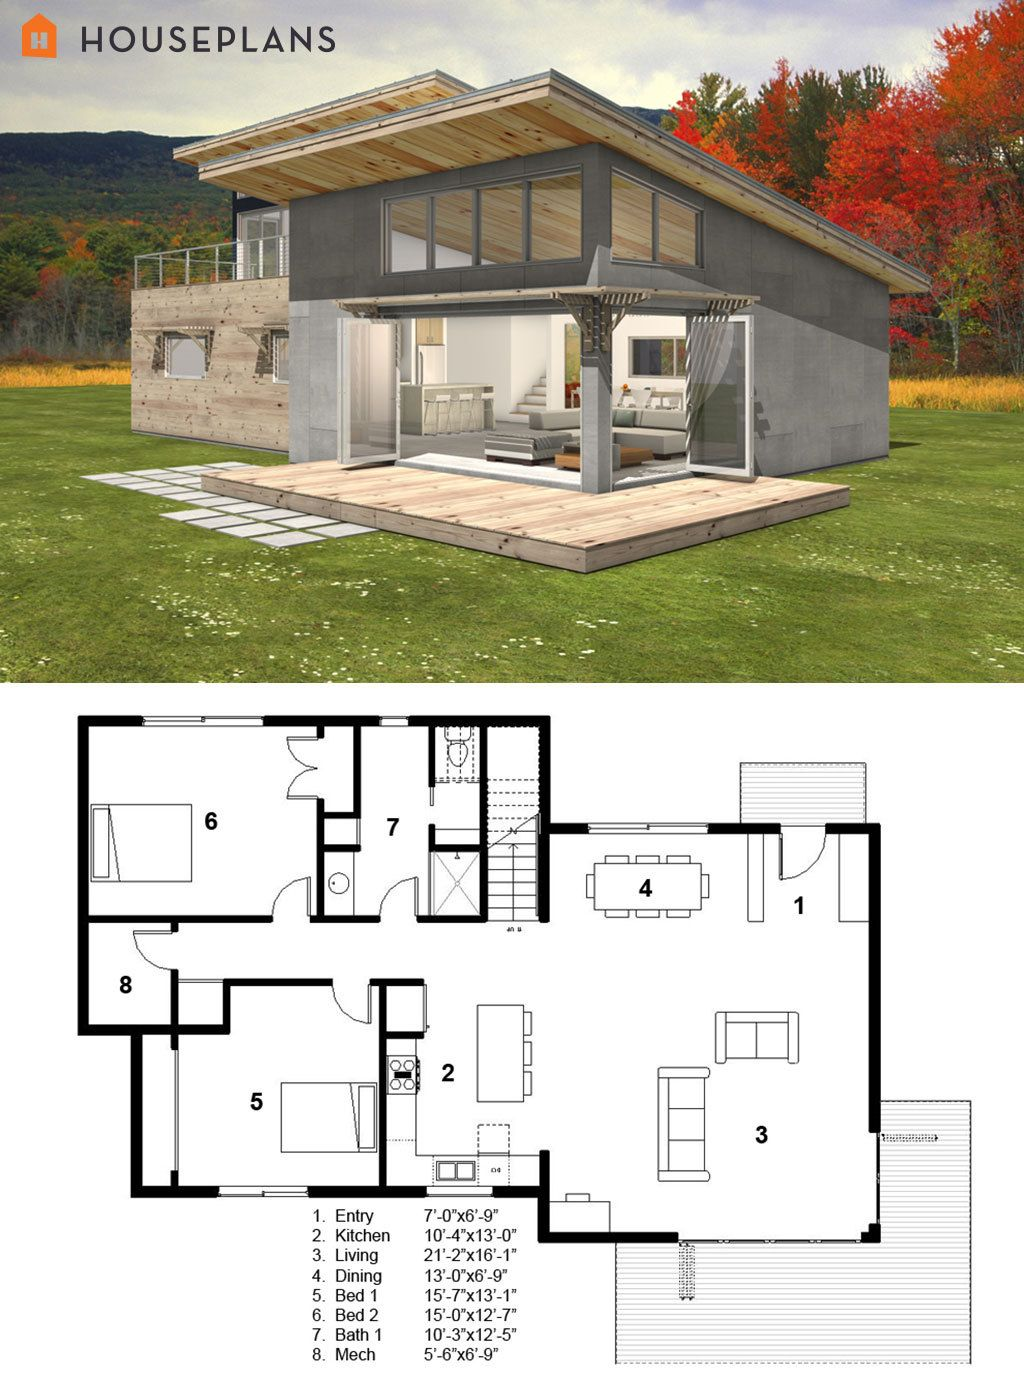 Modern style house plan 3 beds baths 2115 sq ft for Modern home decor big lots